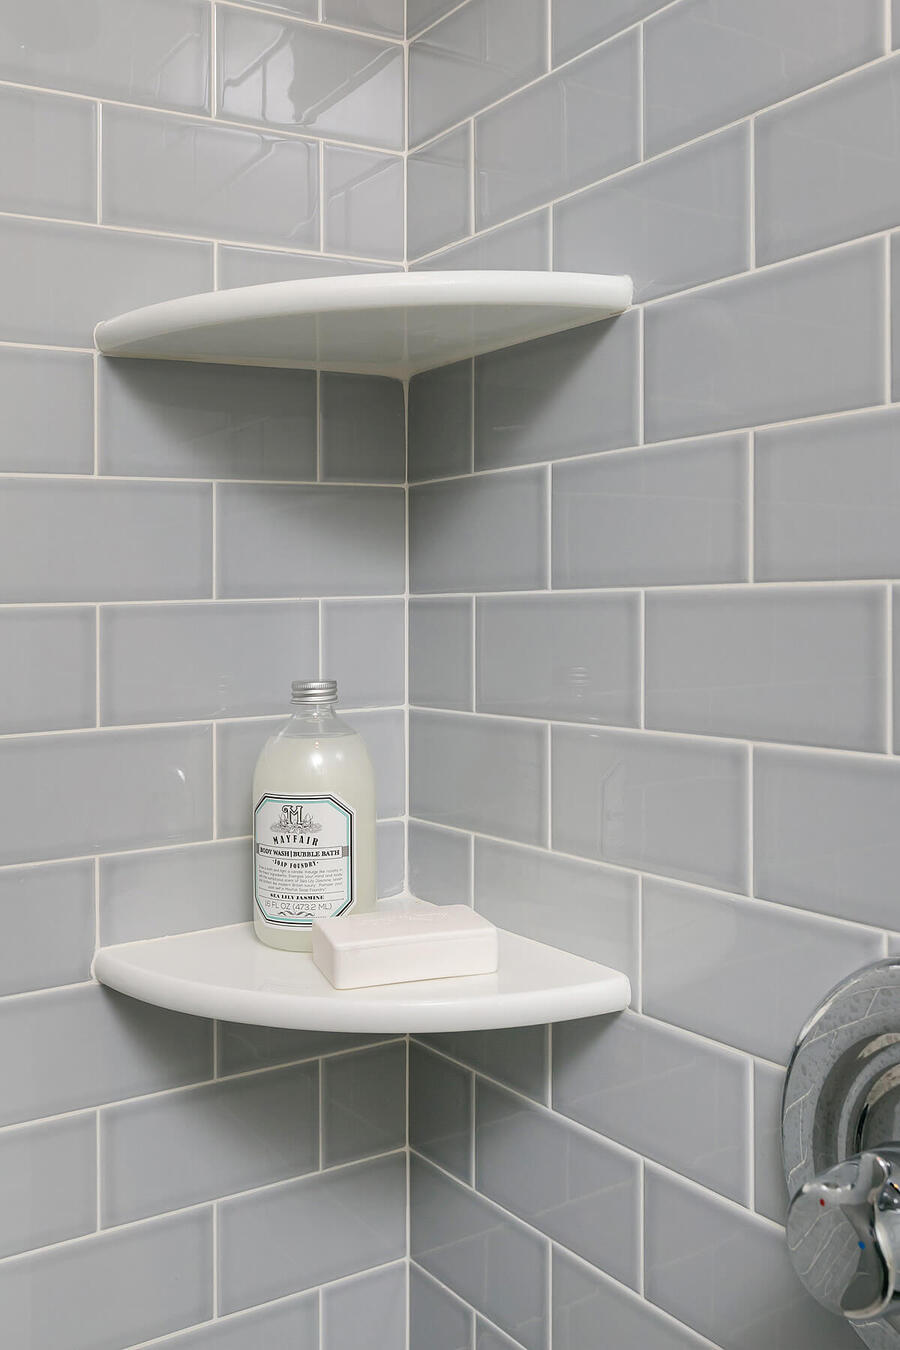 Two Shelves in Shower with Shower Products on Them